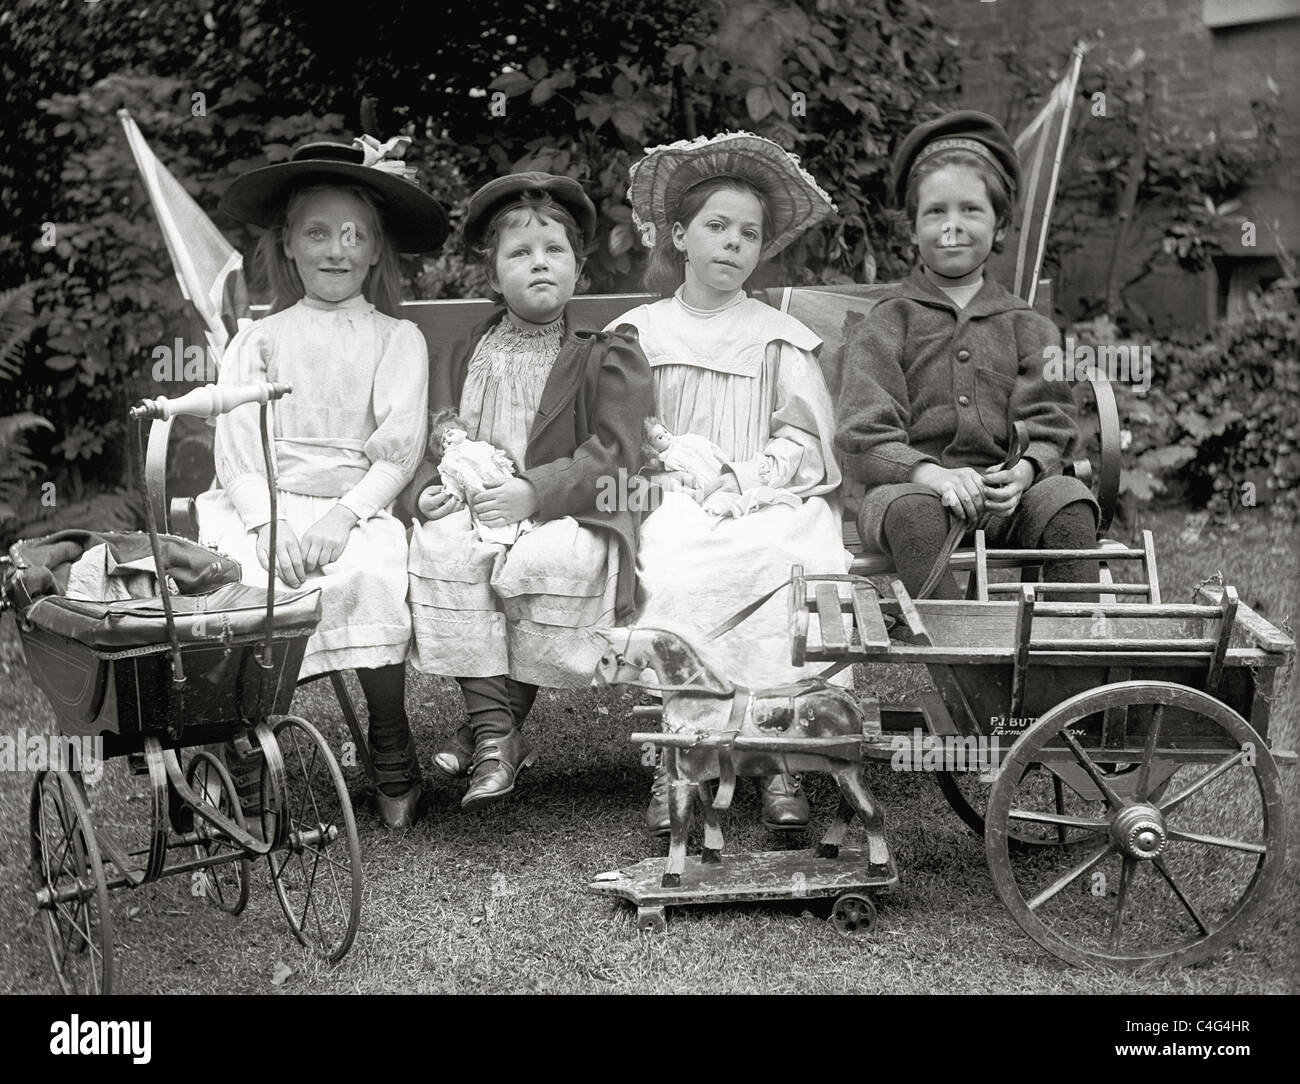 Victorian or Edwardian children sitting in garden with their toys - Stock Image